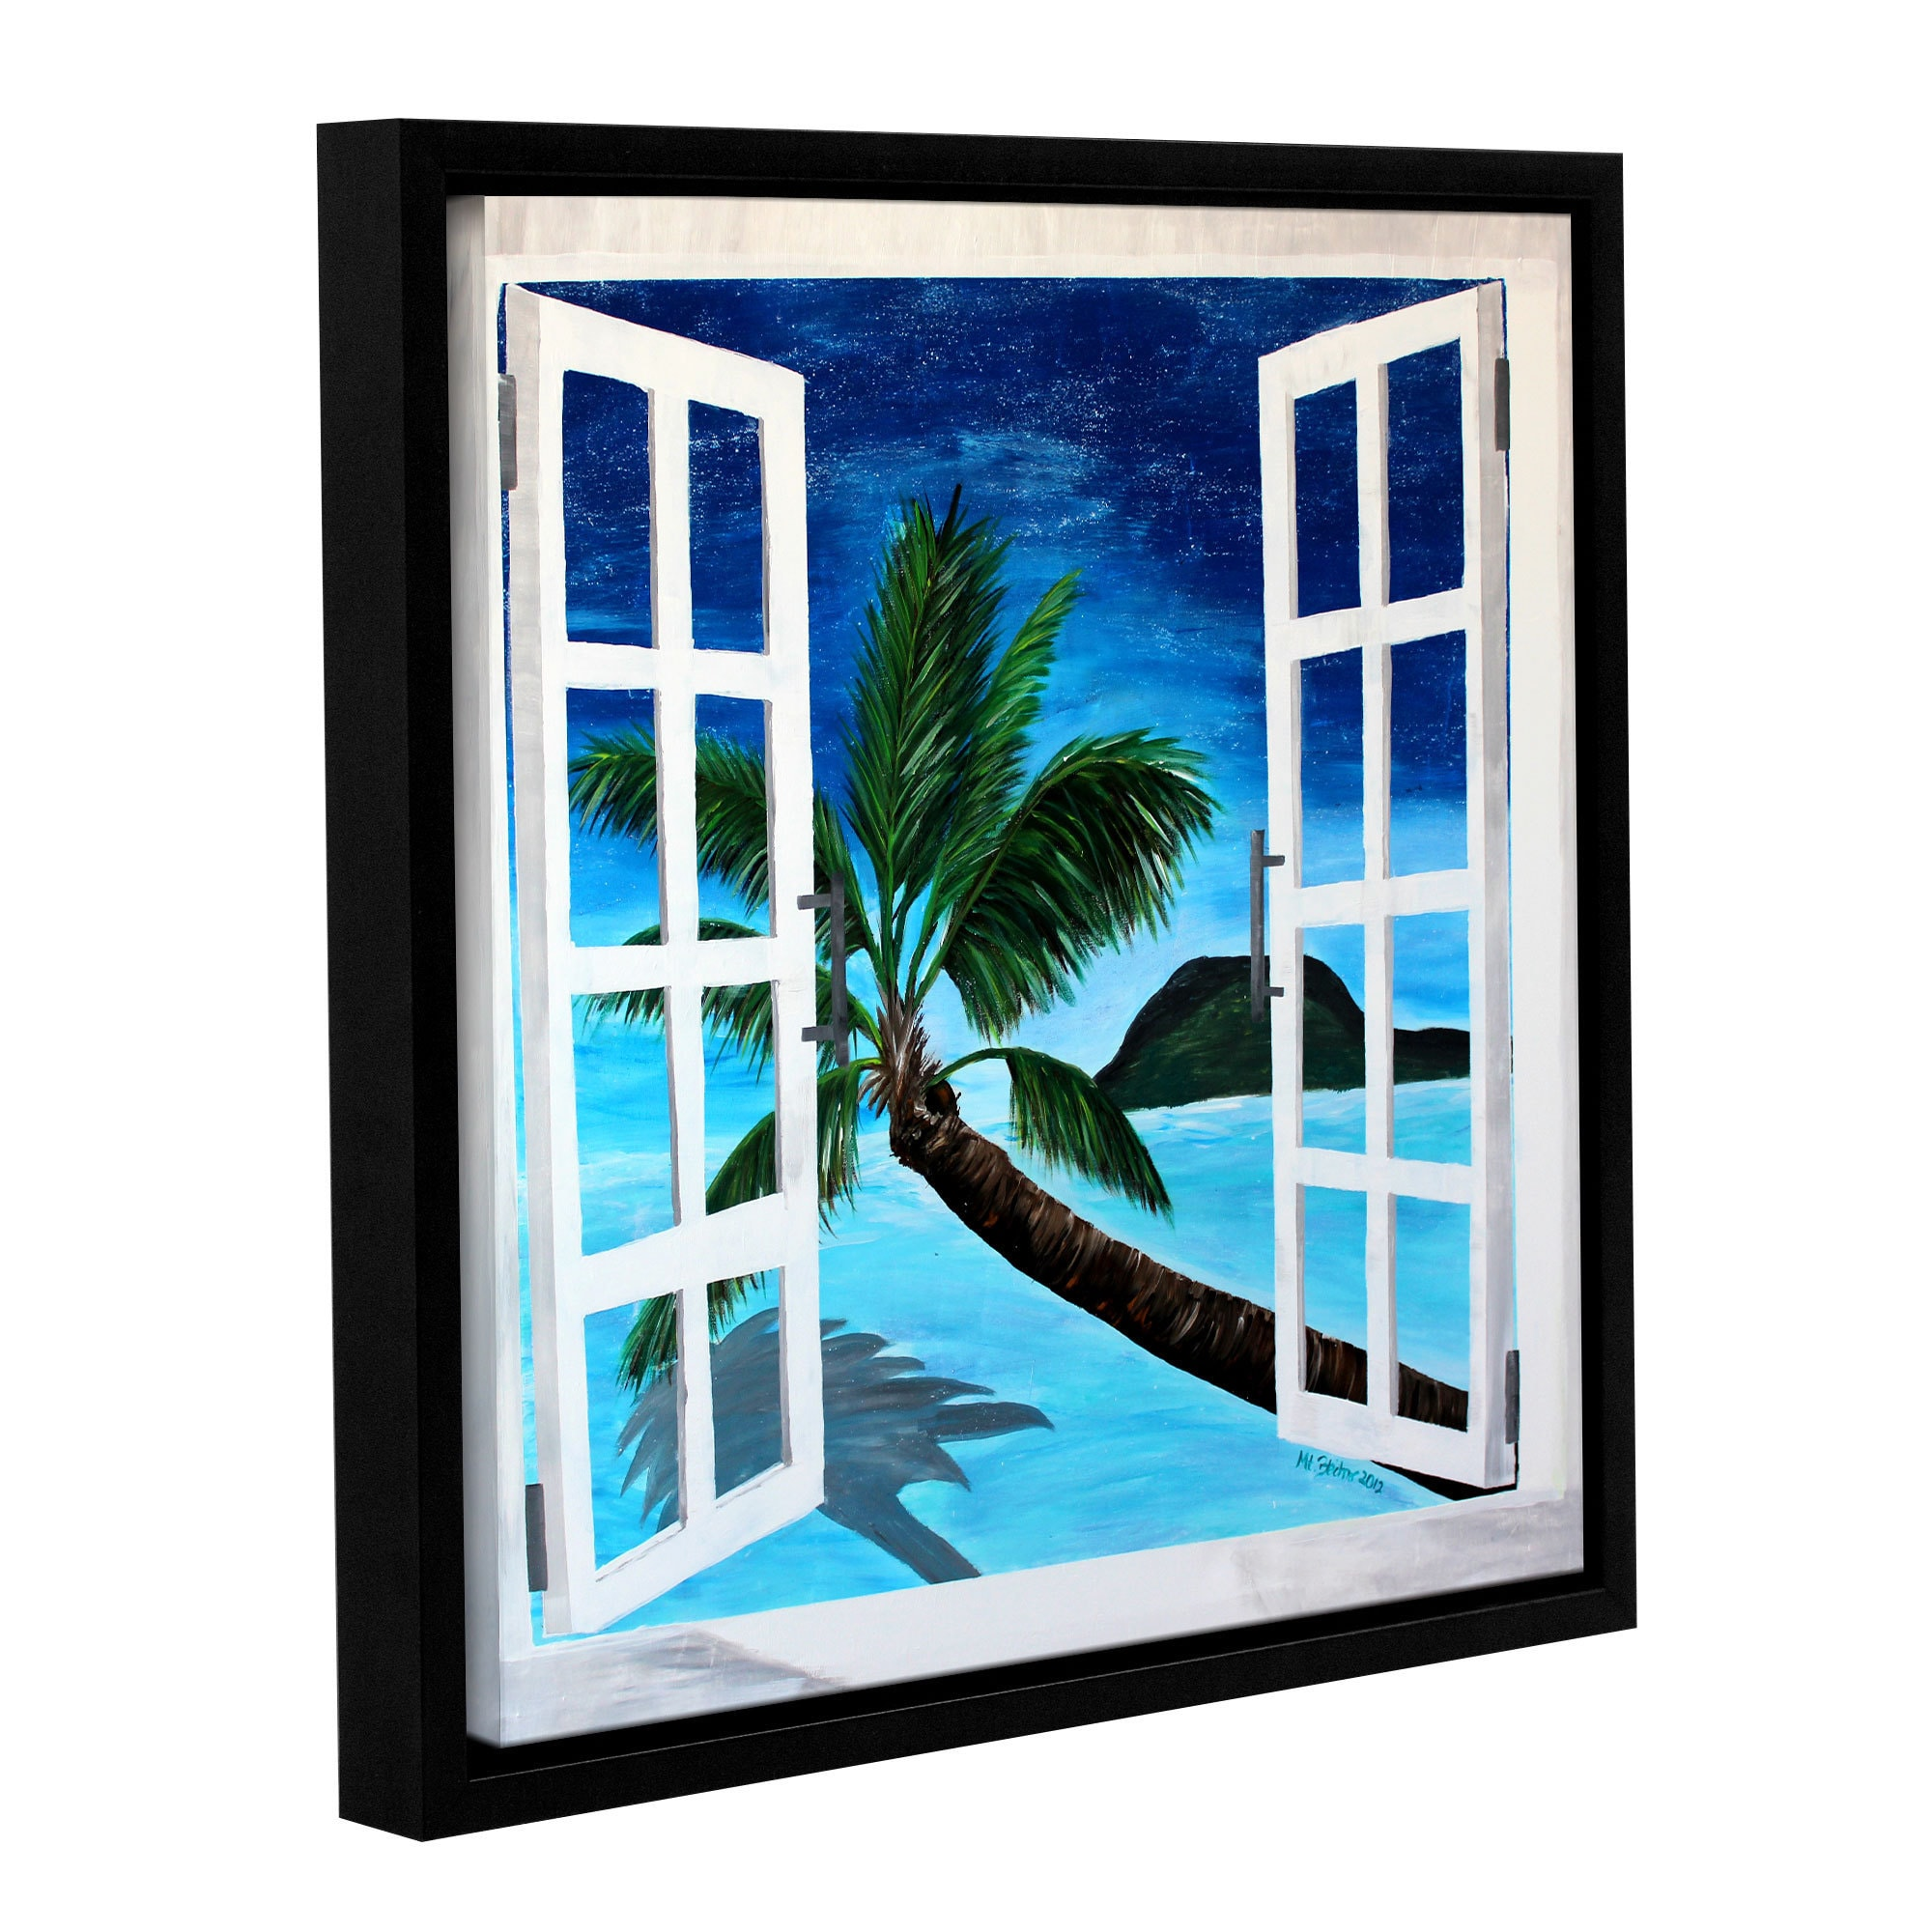 Shop Artwall Marcus Martina Bleichner S Palm View Window Gallery Wrapped Floater Framed Canvas Multi Overstock 11375350